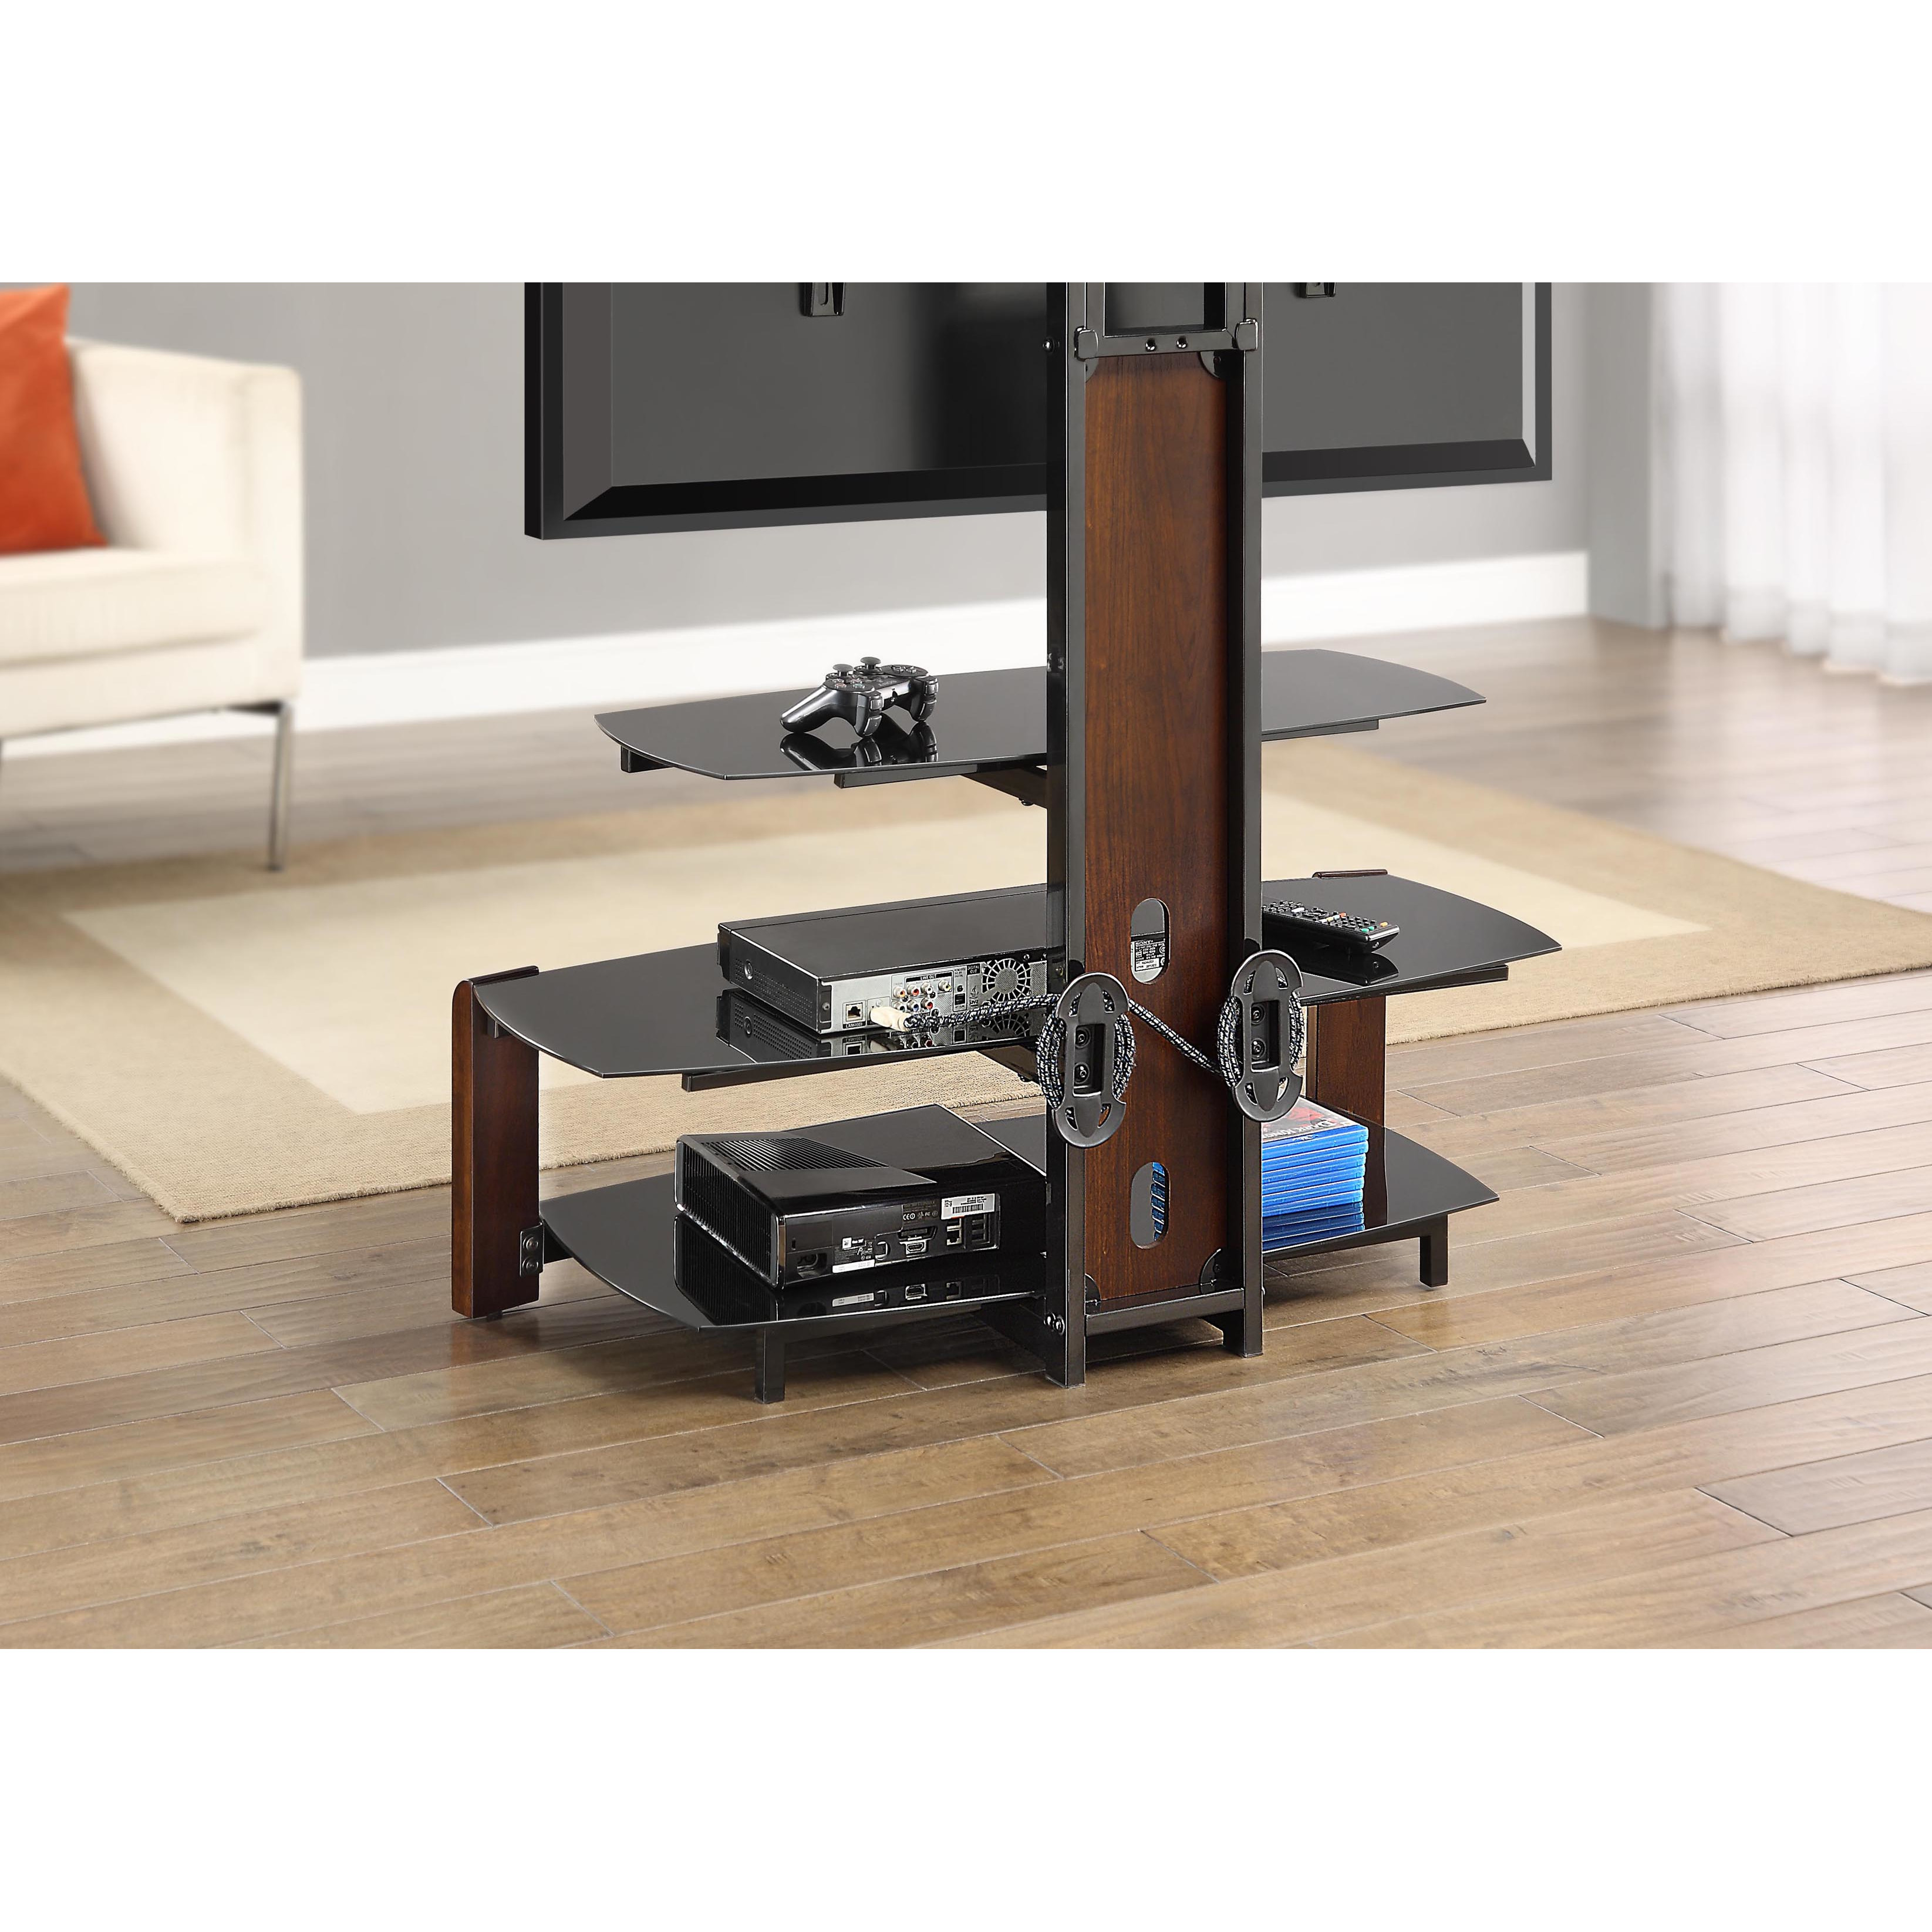 Inspiring whalen tv stand for furniture accessories design with whalen 3-in-1 tv stand